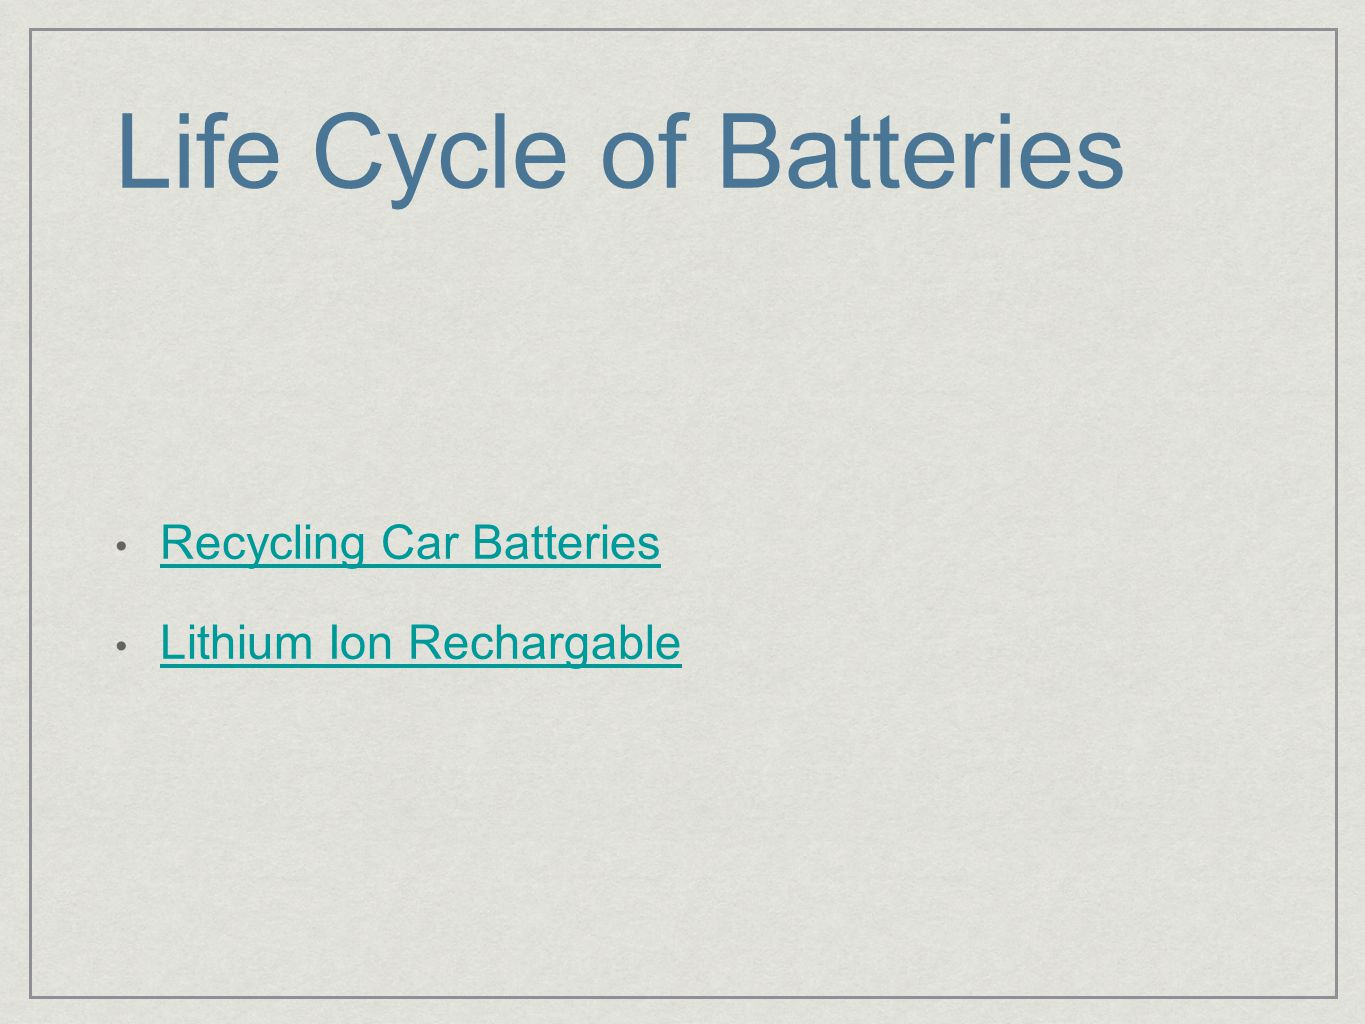 Life Cycle of Batteries